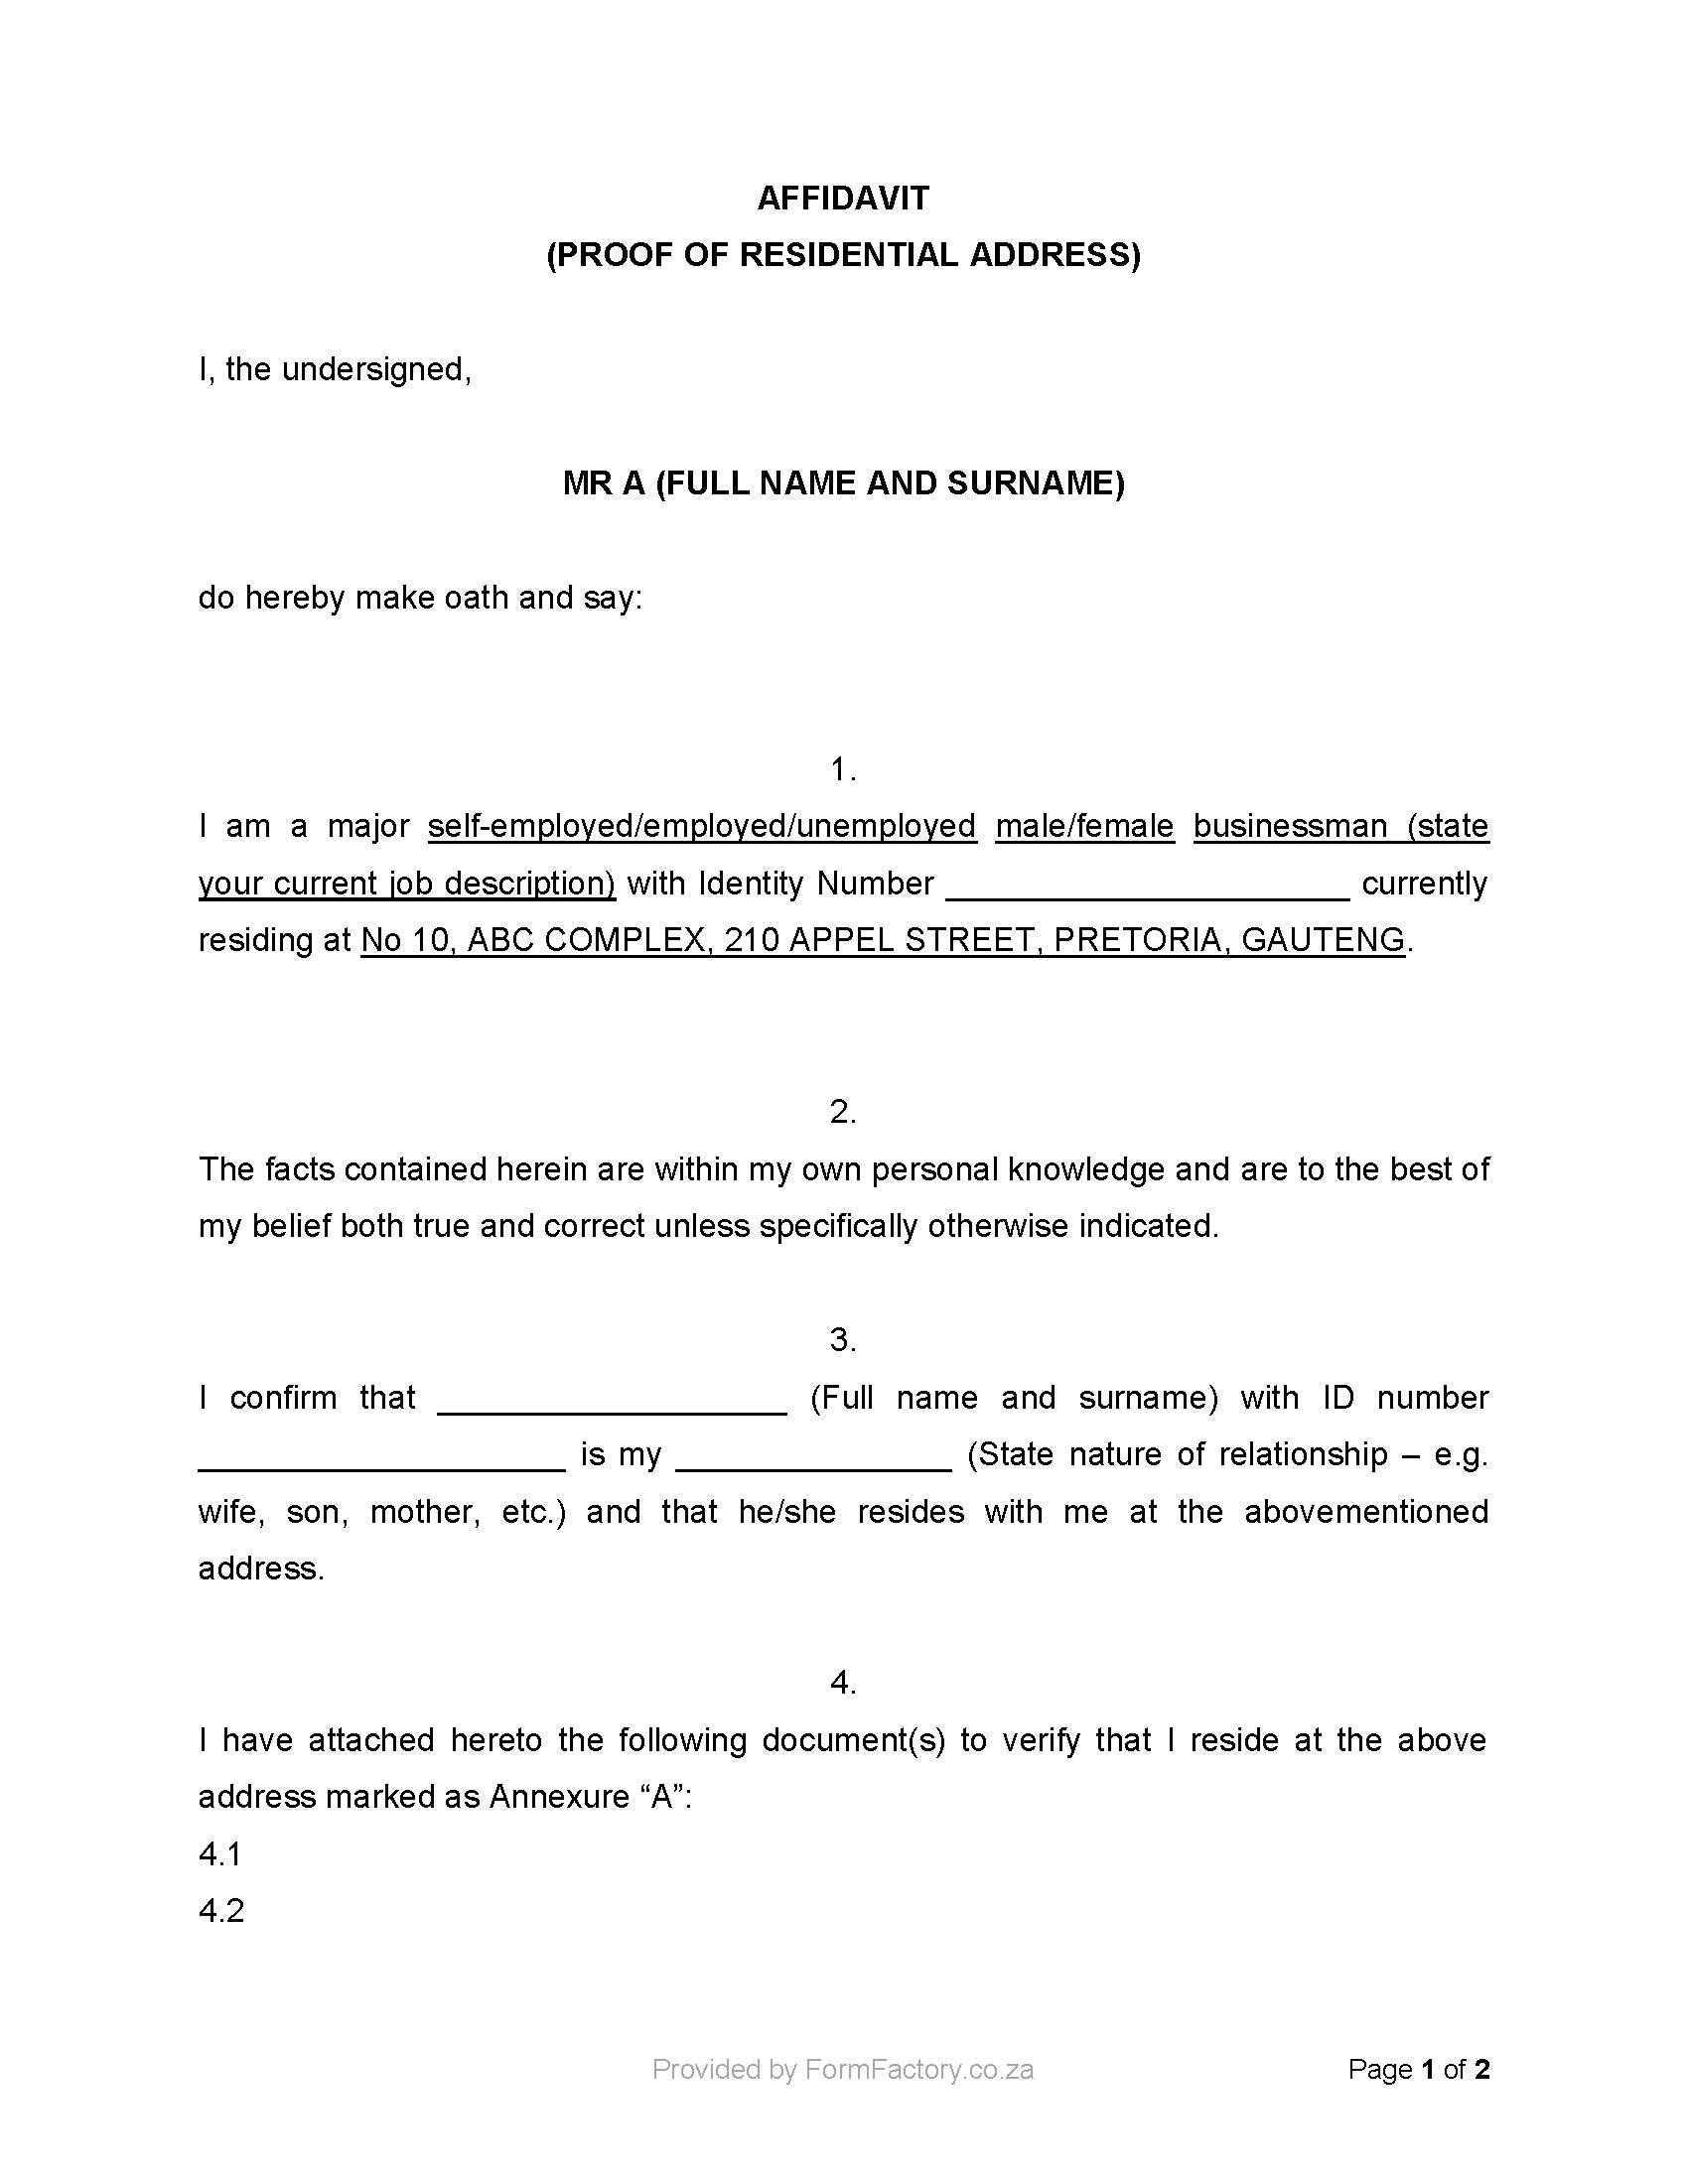 Template For An Affidavit In South Africa